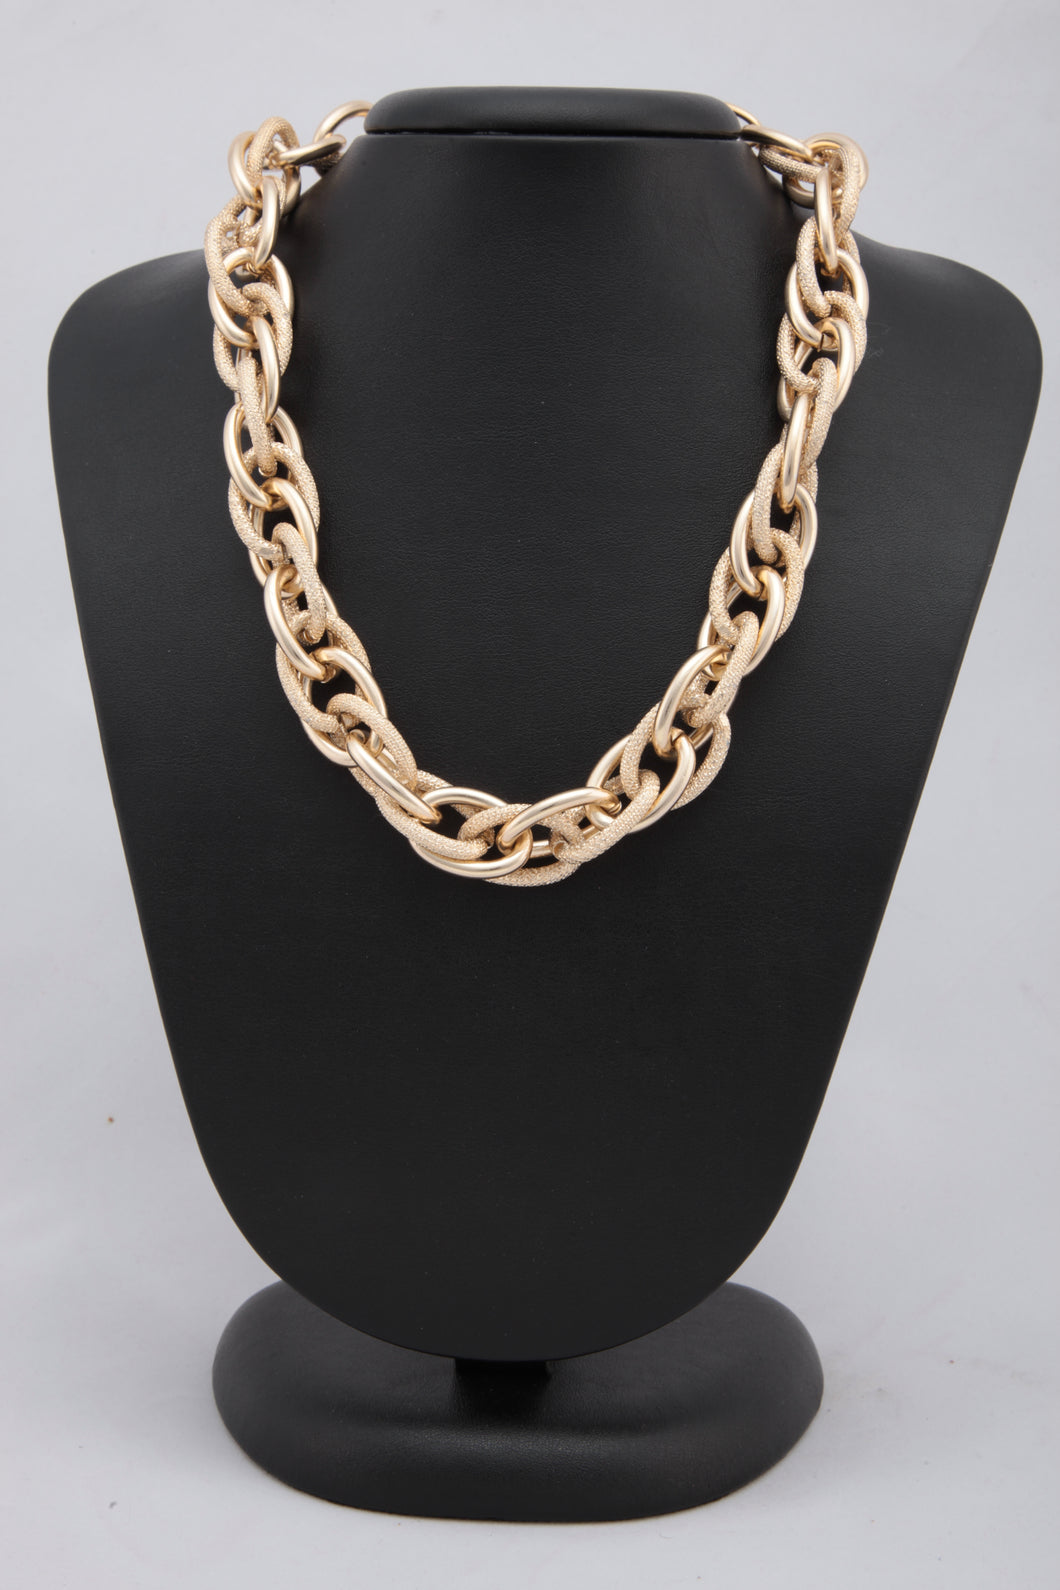 GOLDEN COLOUR MULTILAYERED BRAIDED NECKLACE